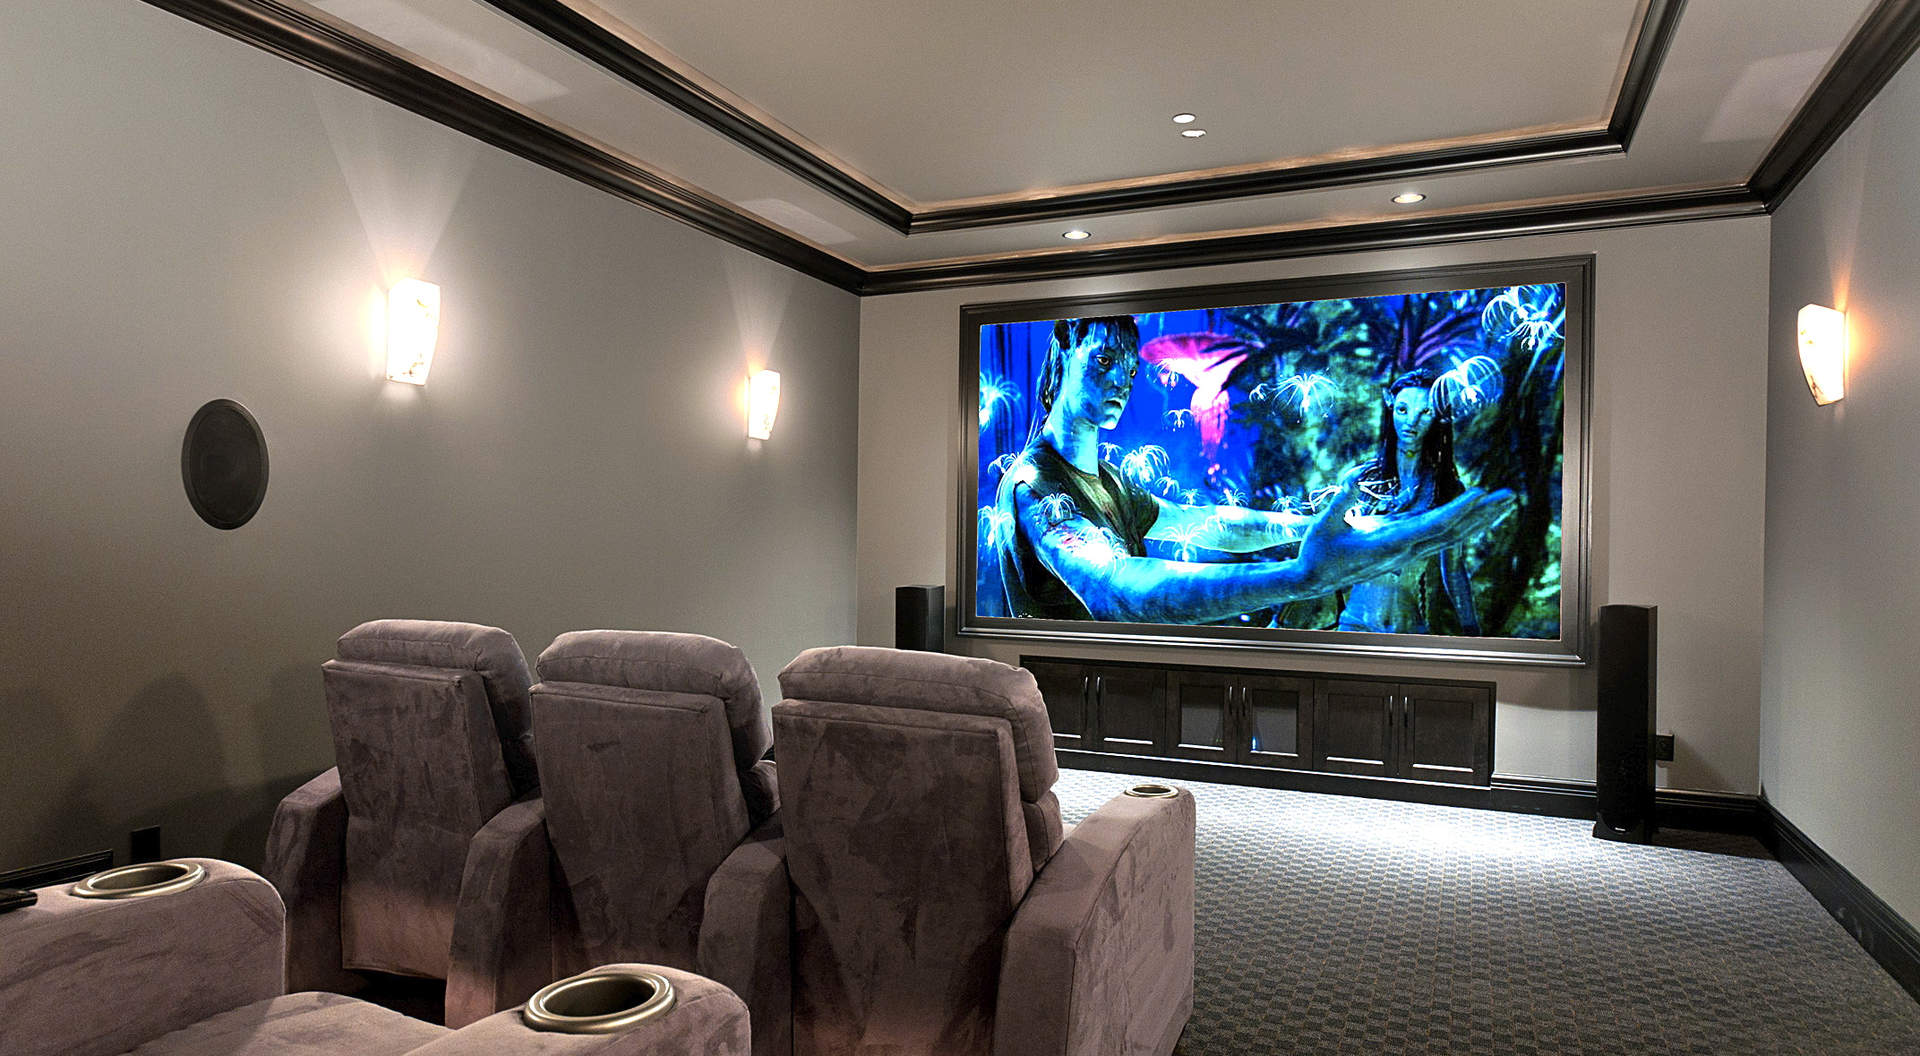 Fabulous Automated Home Theatre with State-of-the-Art Surround Sound